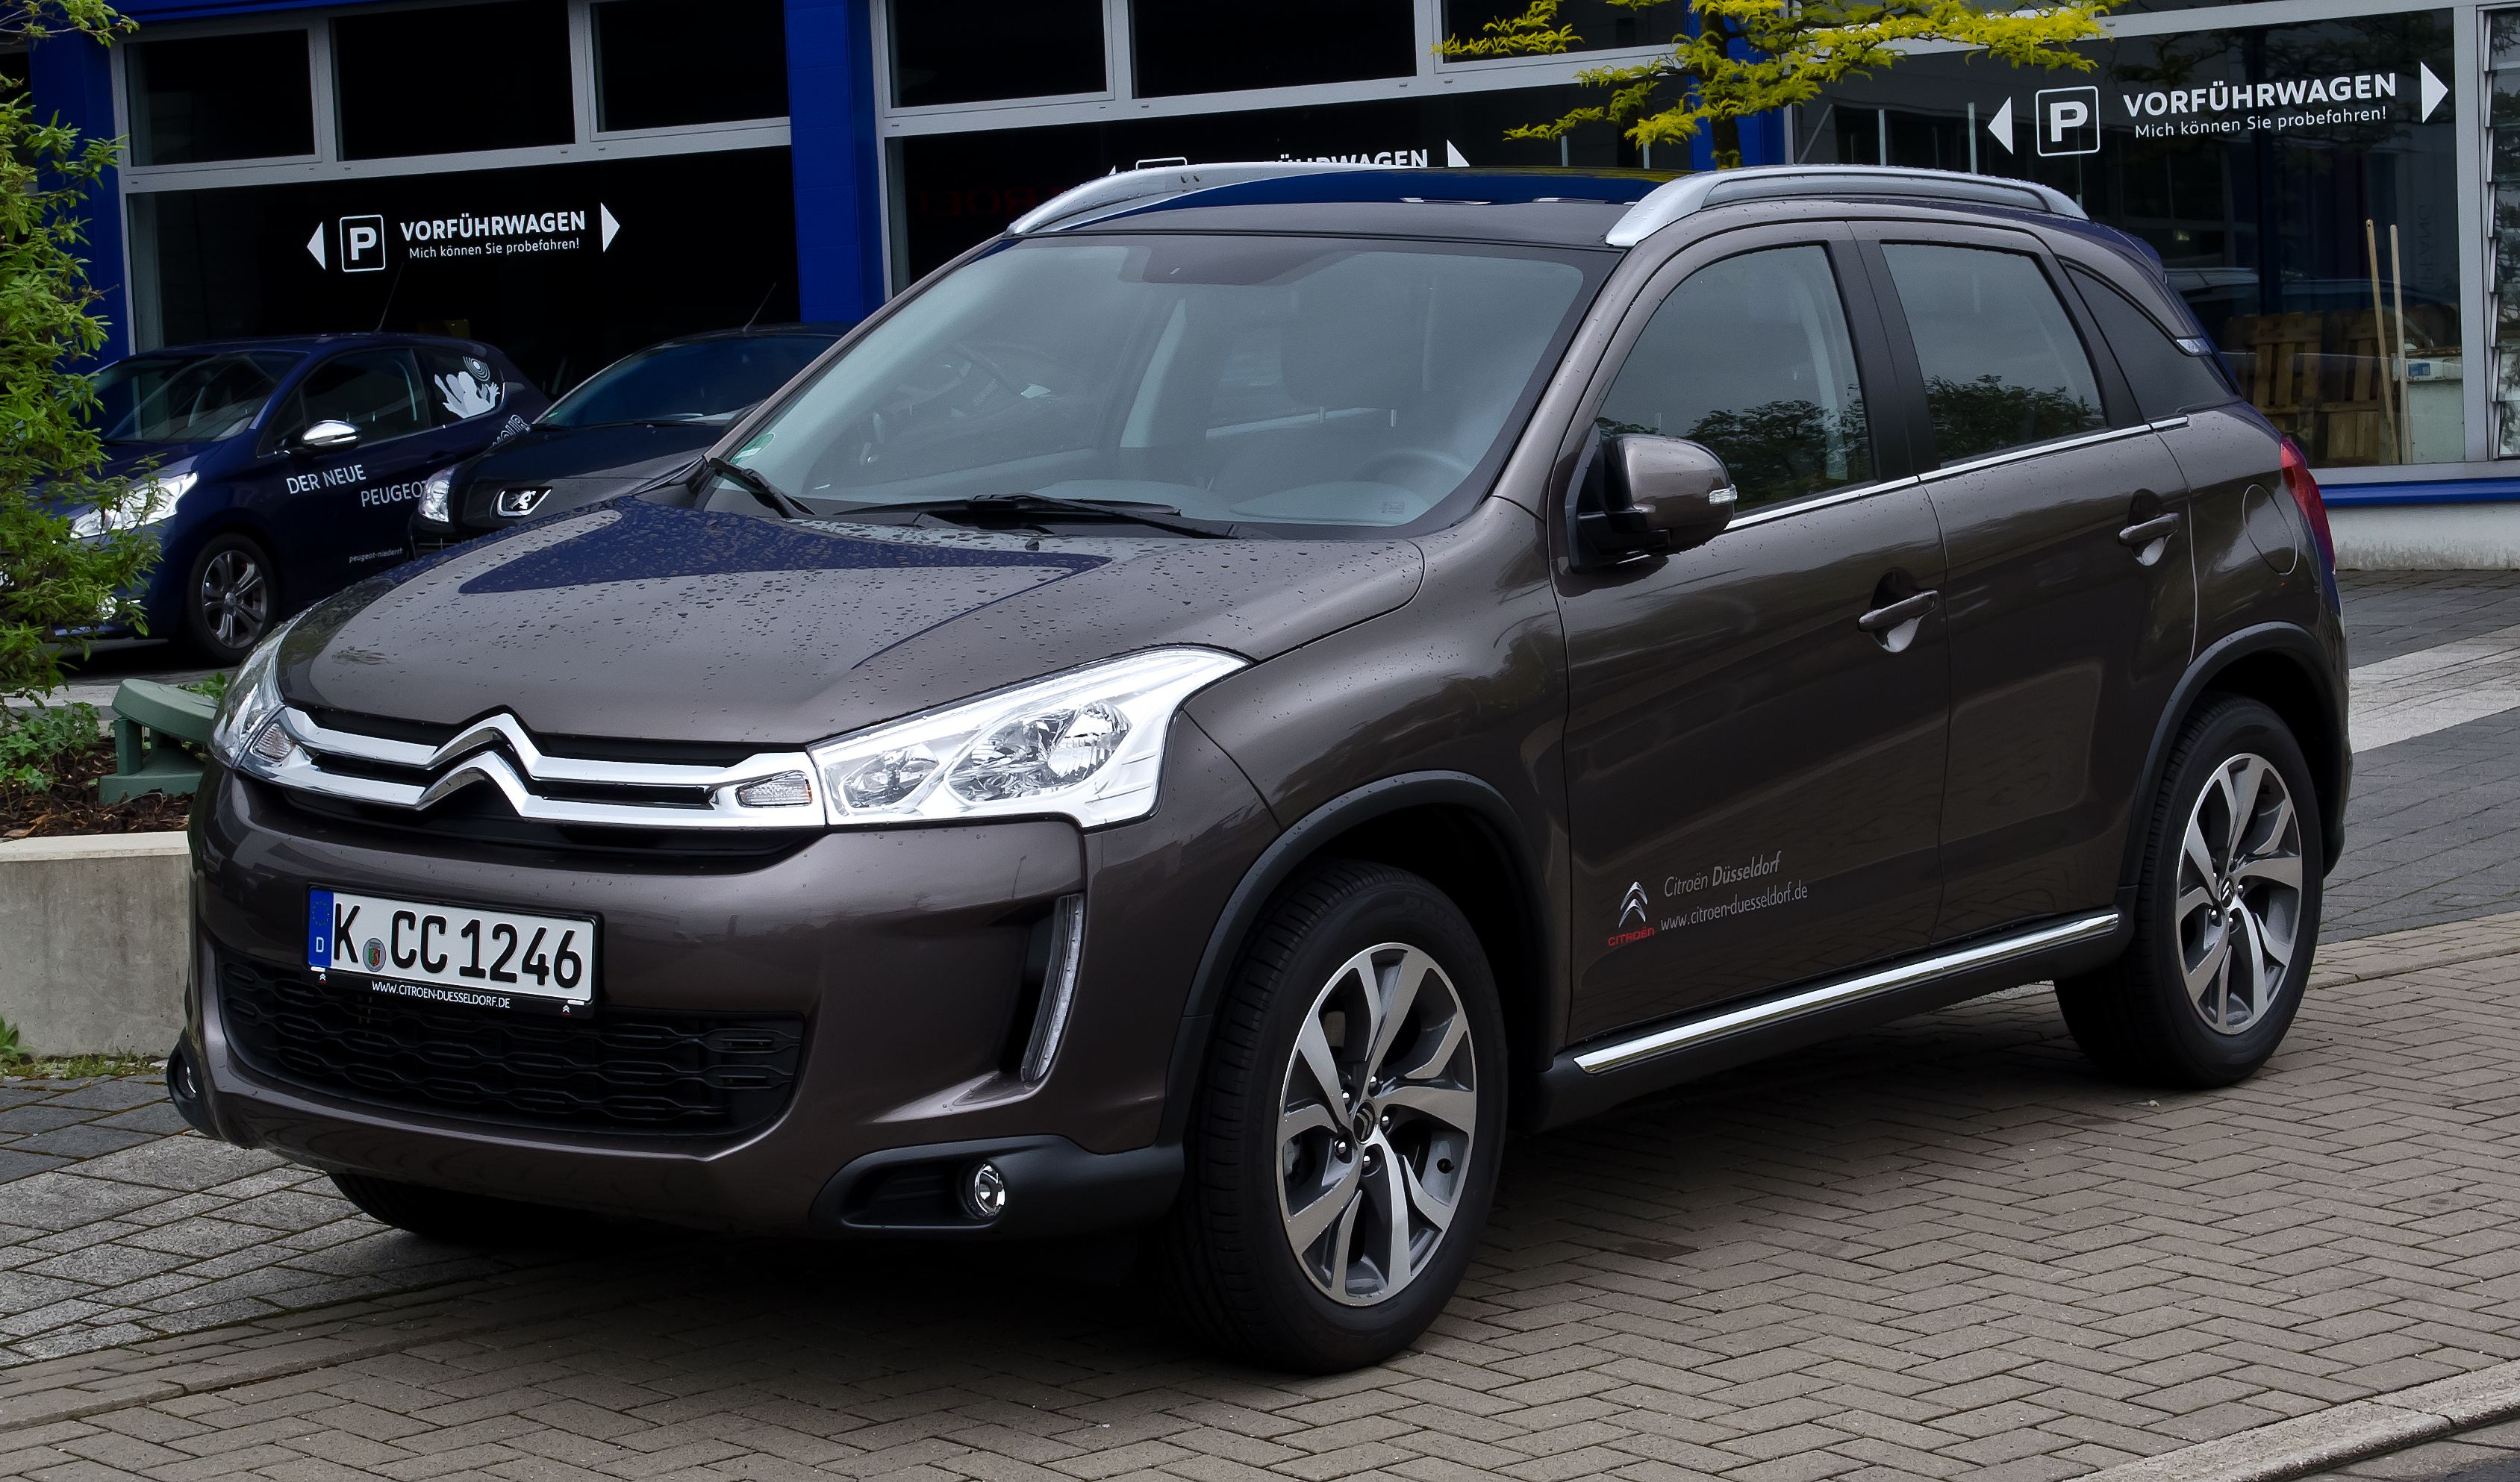 Citroen C4 Aircross Wallpapers Vehicles Hq Citroen C4 Aircross